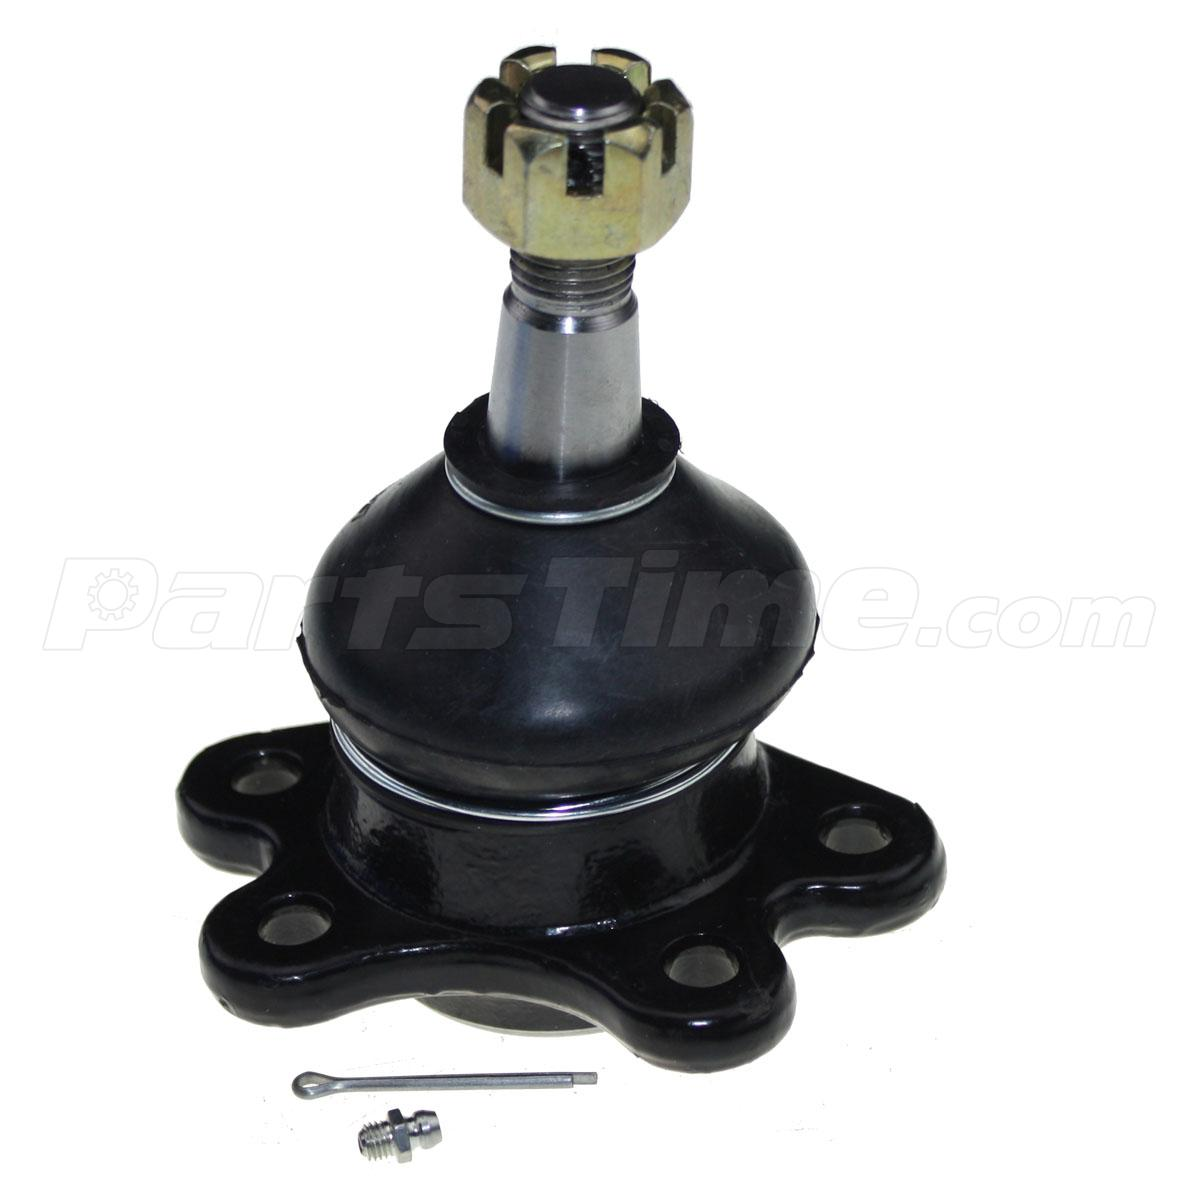 Toyota Celica 1994 1999 Front Lower Ball Joint: 4PCS Front Lower Upper Ball Joint For 1996-1999 GMC K1500